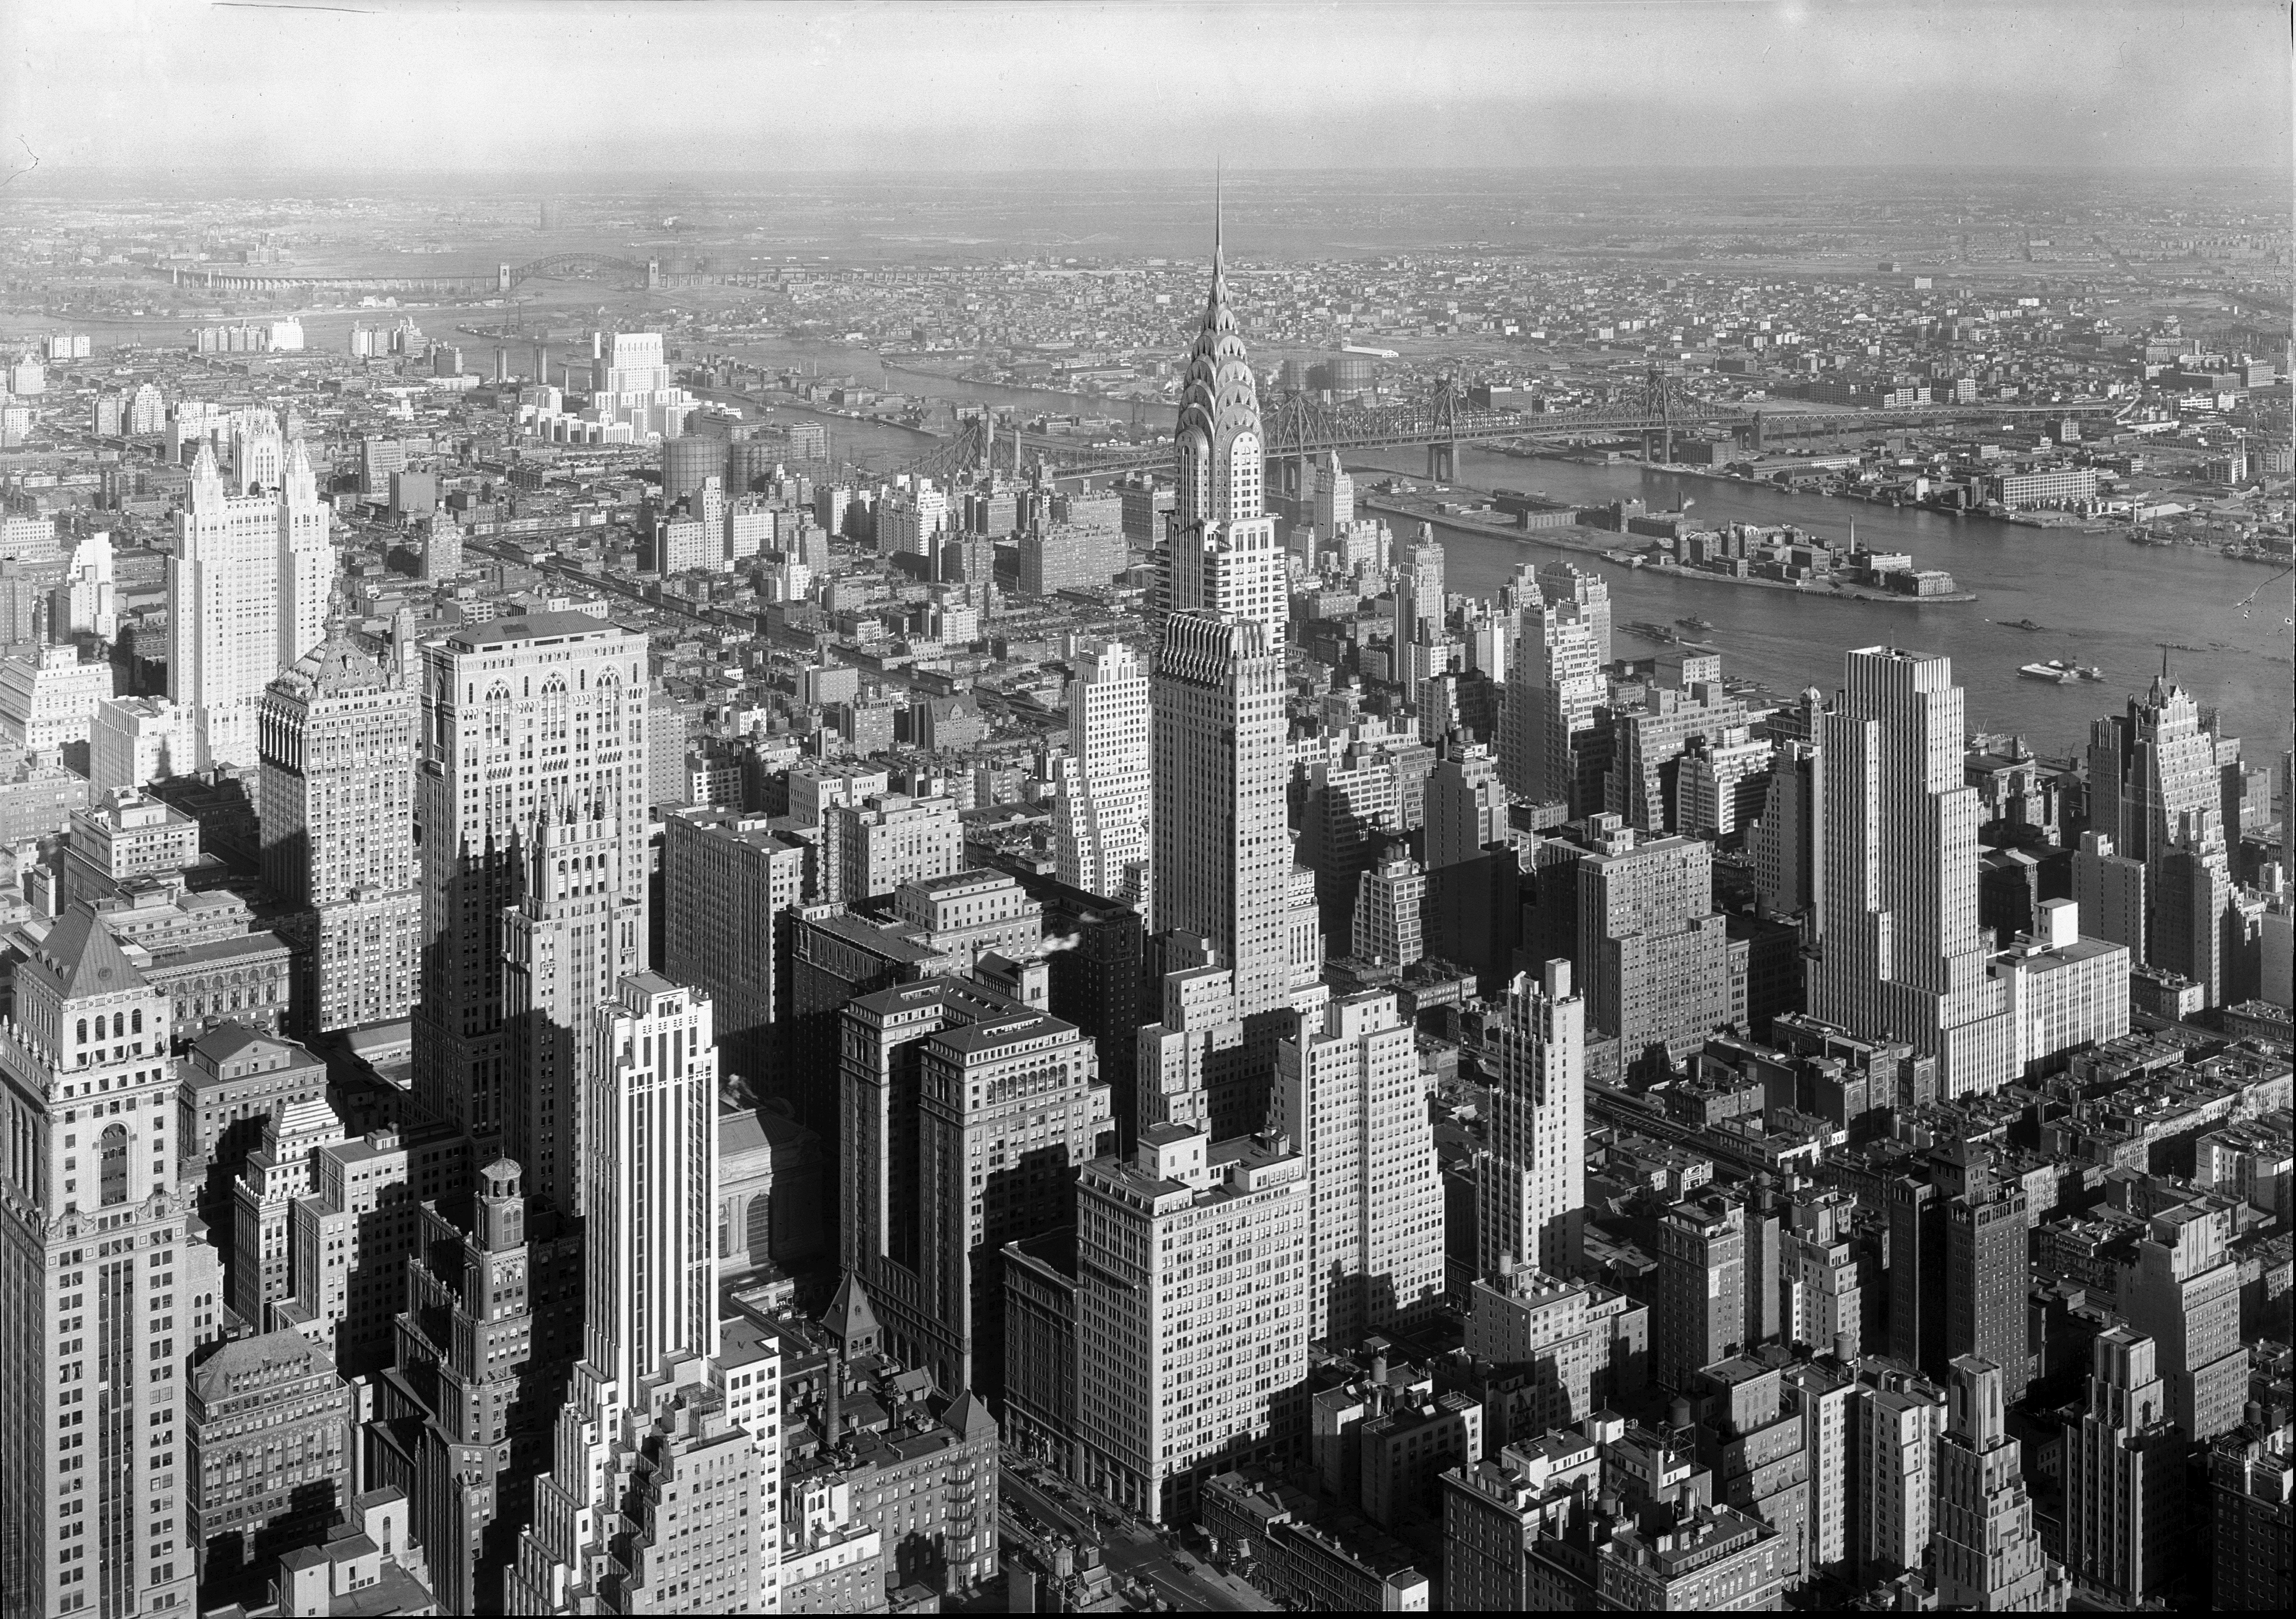 http://upload.wikimedia.org/wikipedia/commons/e/e5/Chrysler_Building_Midtown_Manhattan_New_York_City_1932.jpg